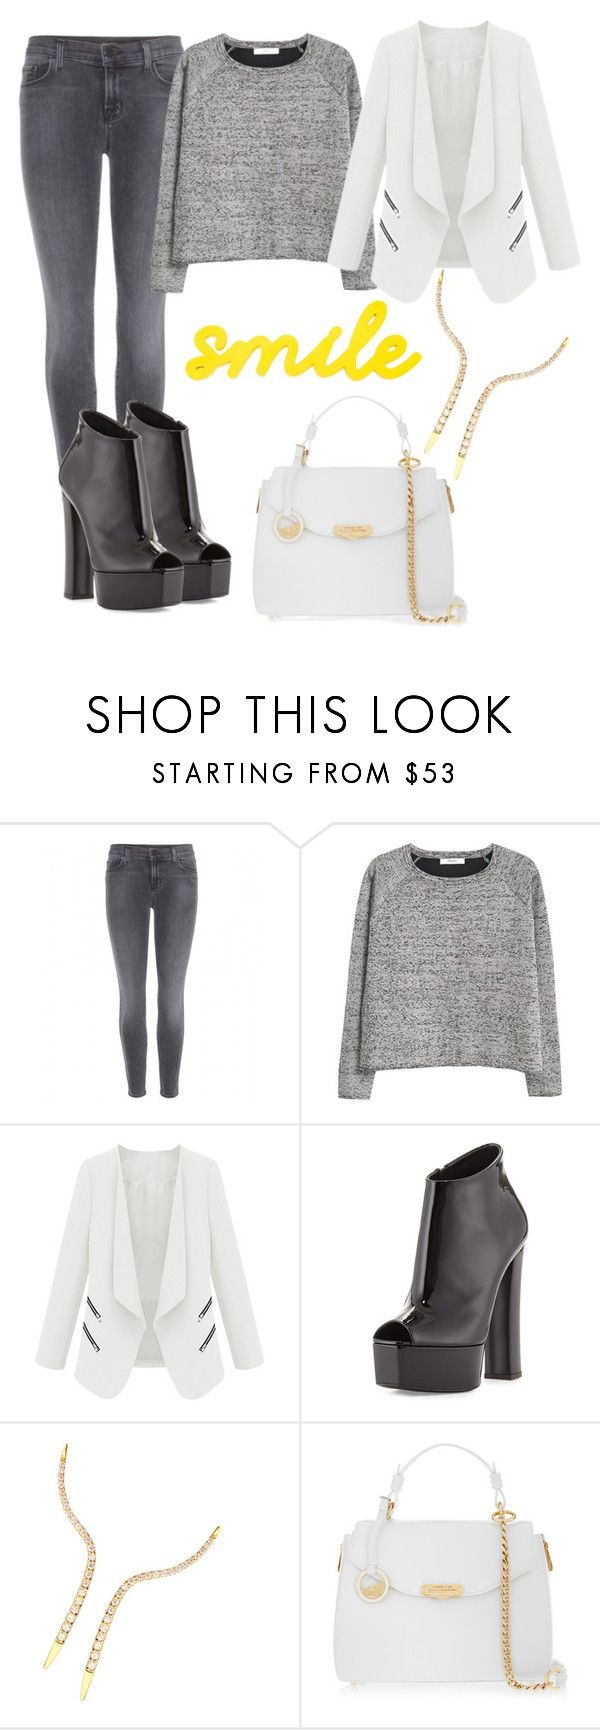 """Senza titolo #465"" by lady-cherries00 ❤ liked on Polyvore featuring J Brand, MANGO, Giuseppe Zanotti, Lana and Versace"